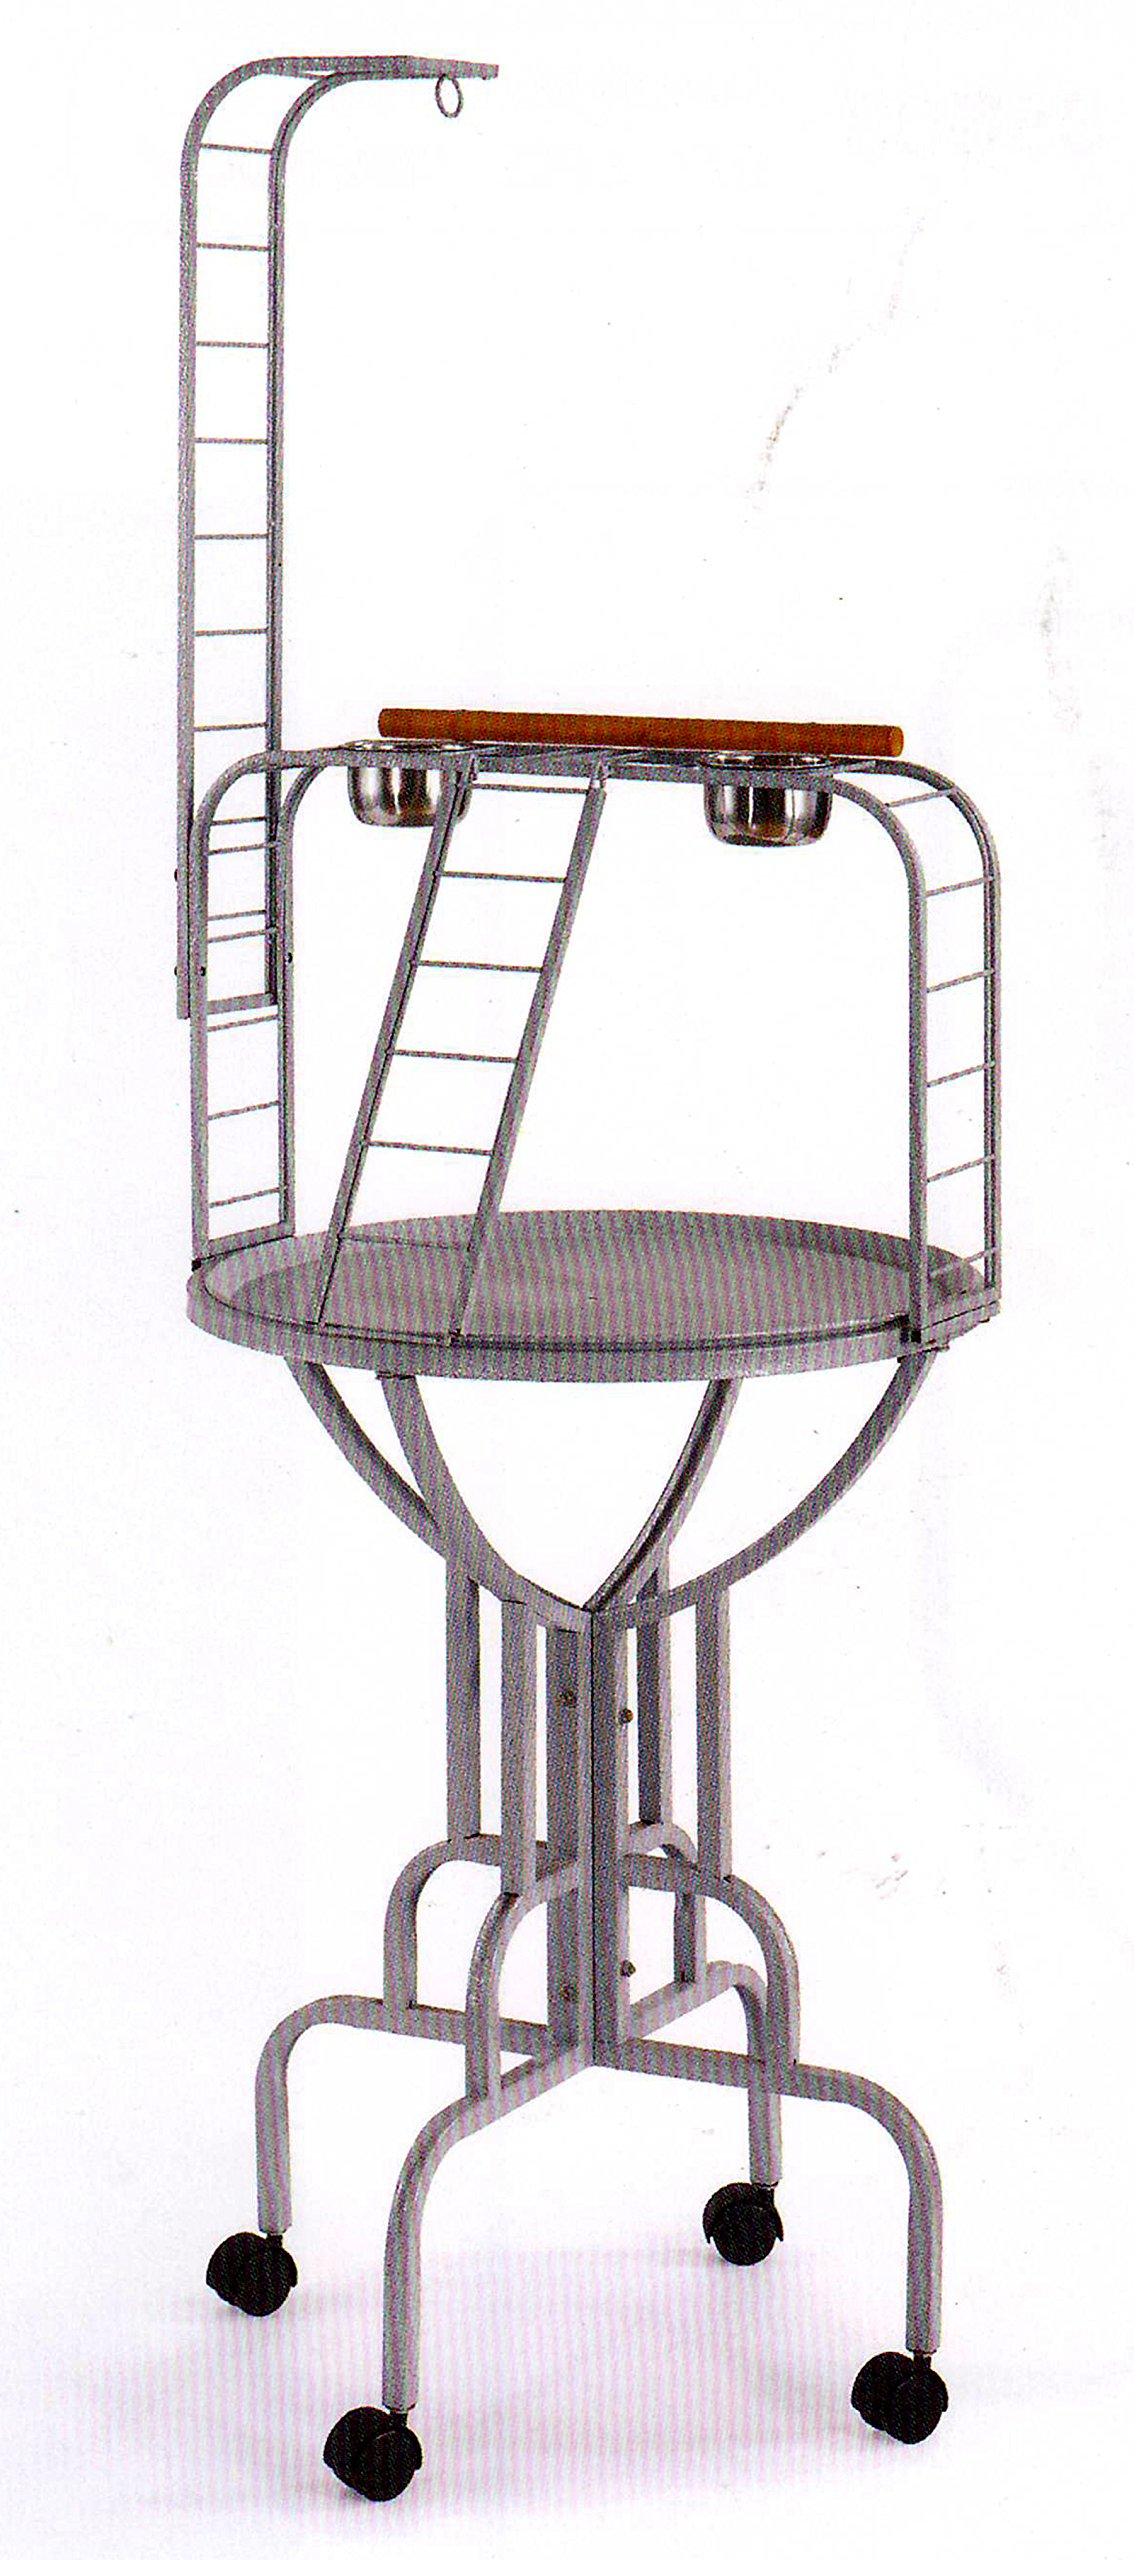 NEW Elegant Design Wrought Iron Parrot Bird Play Gym Ground Stand With Metal Pan & LadderBlack Vein by Mcage